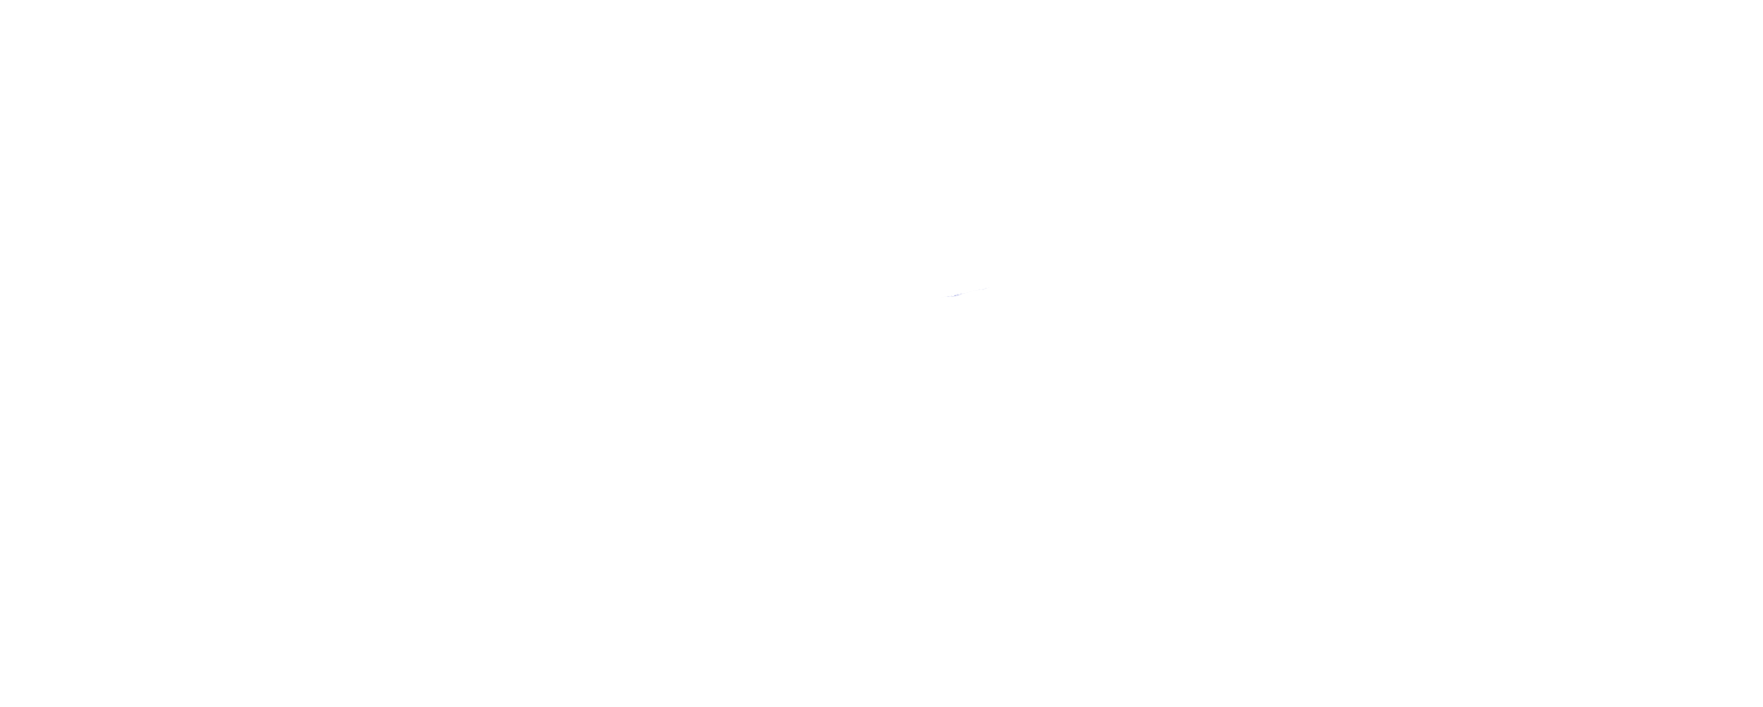 AS Caluire Athlétisme